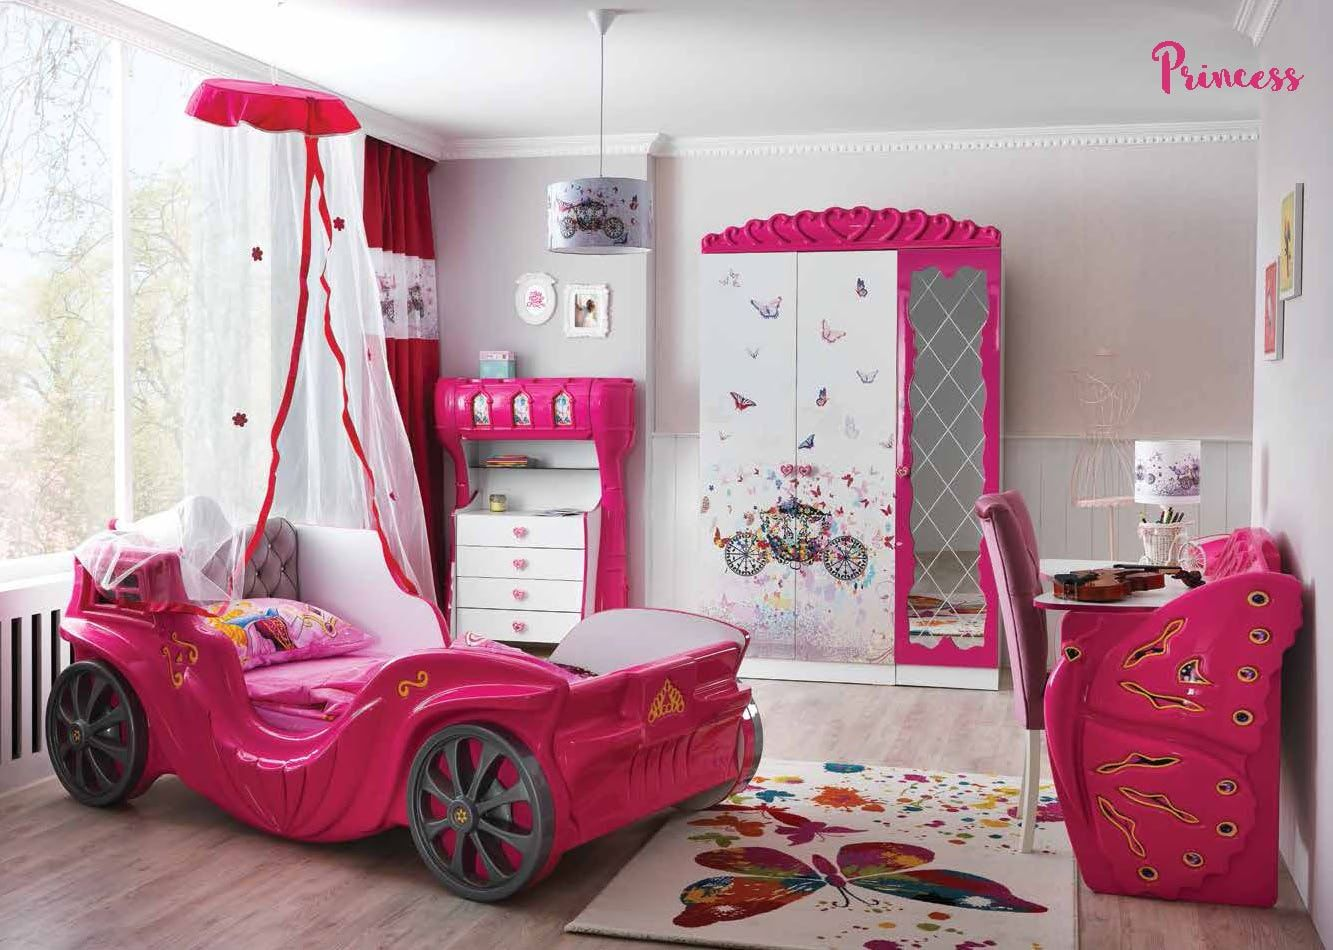 Car Beds for Children's Rooms: Bright Element of Interior Design. White designed room with crimson accents and coach imitating car with canopy